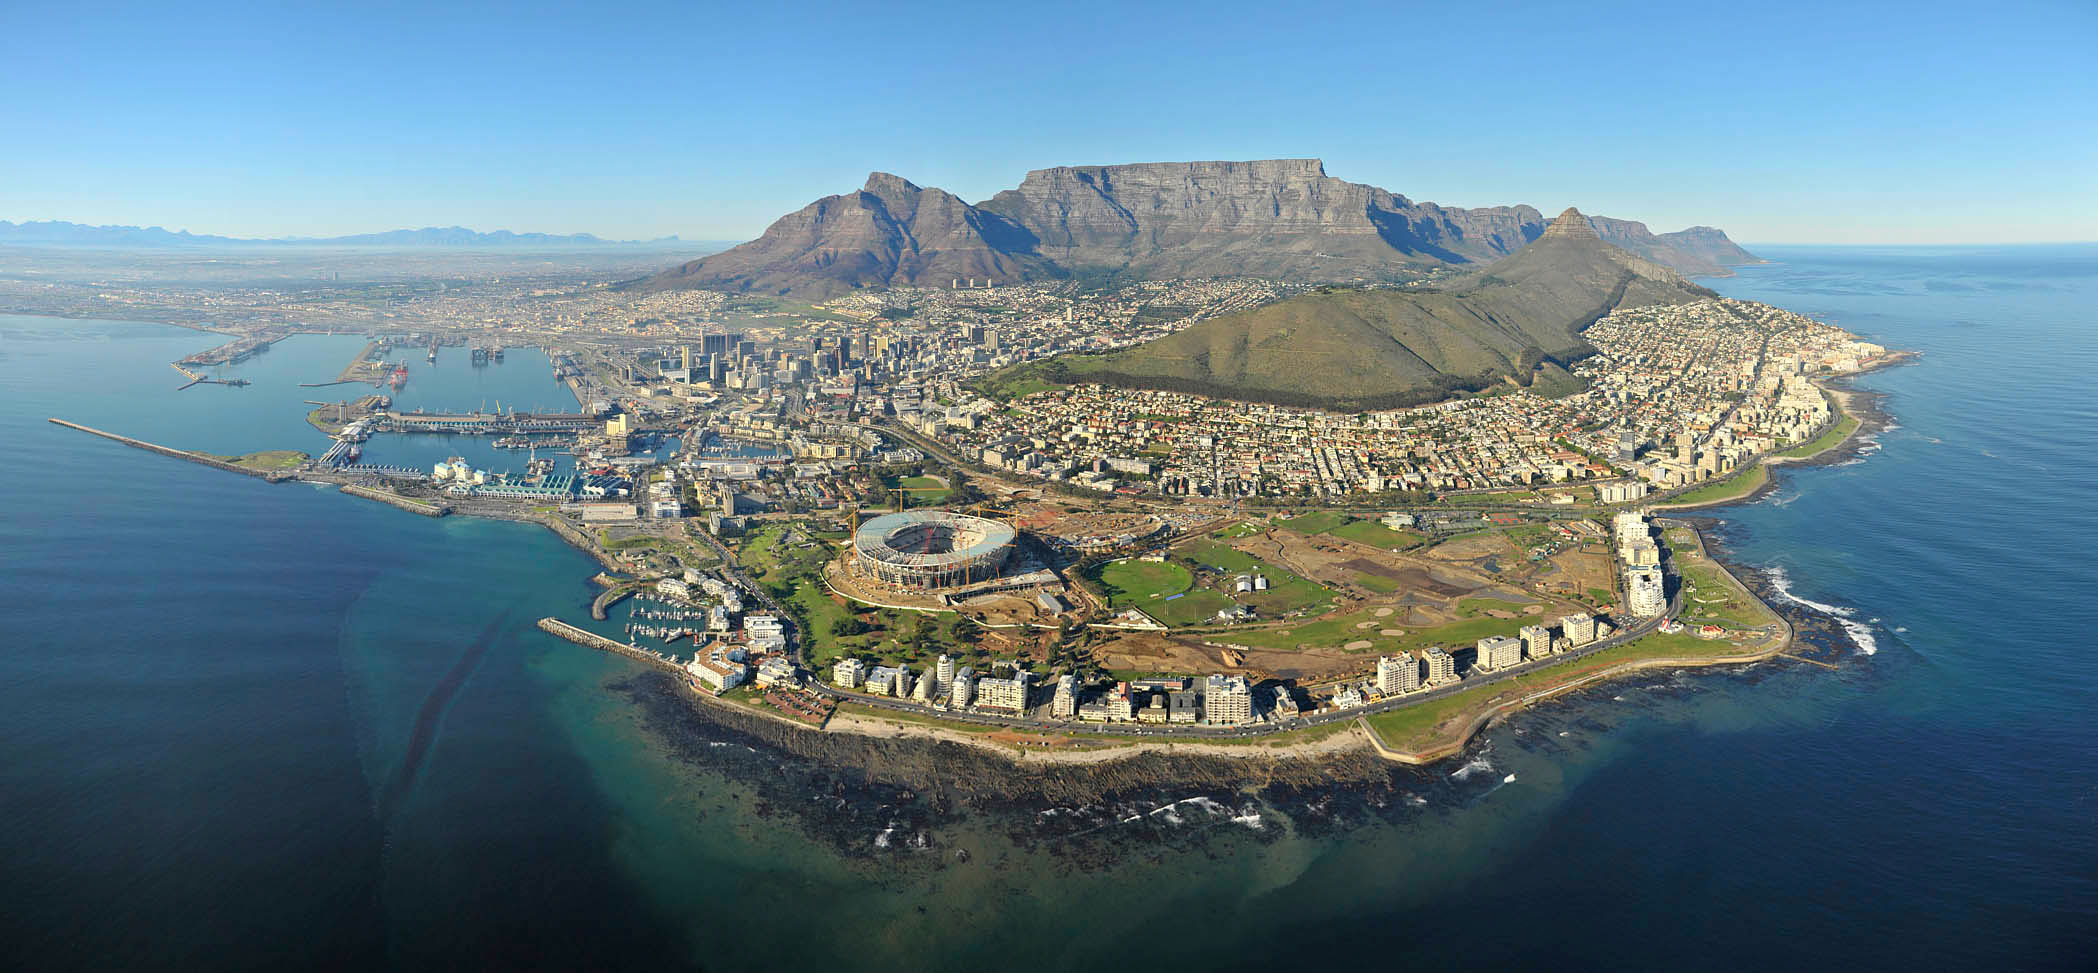 Cape Town South Africa Hd Wallpaper Download Cool Hd Wallpapers Here